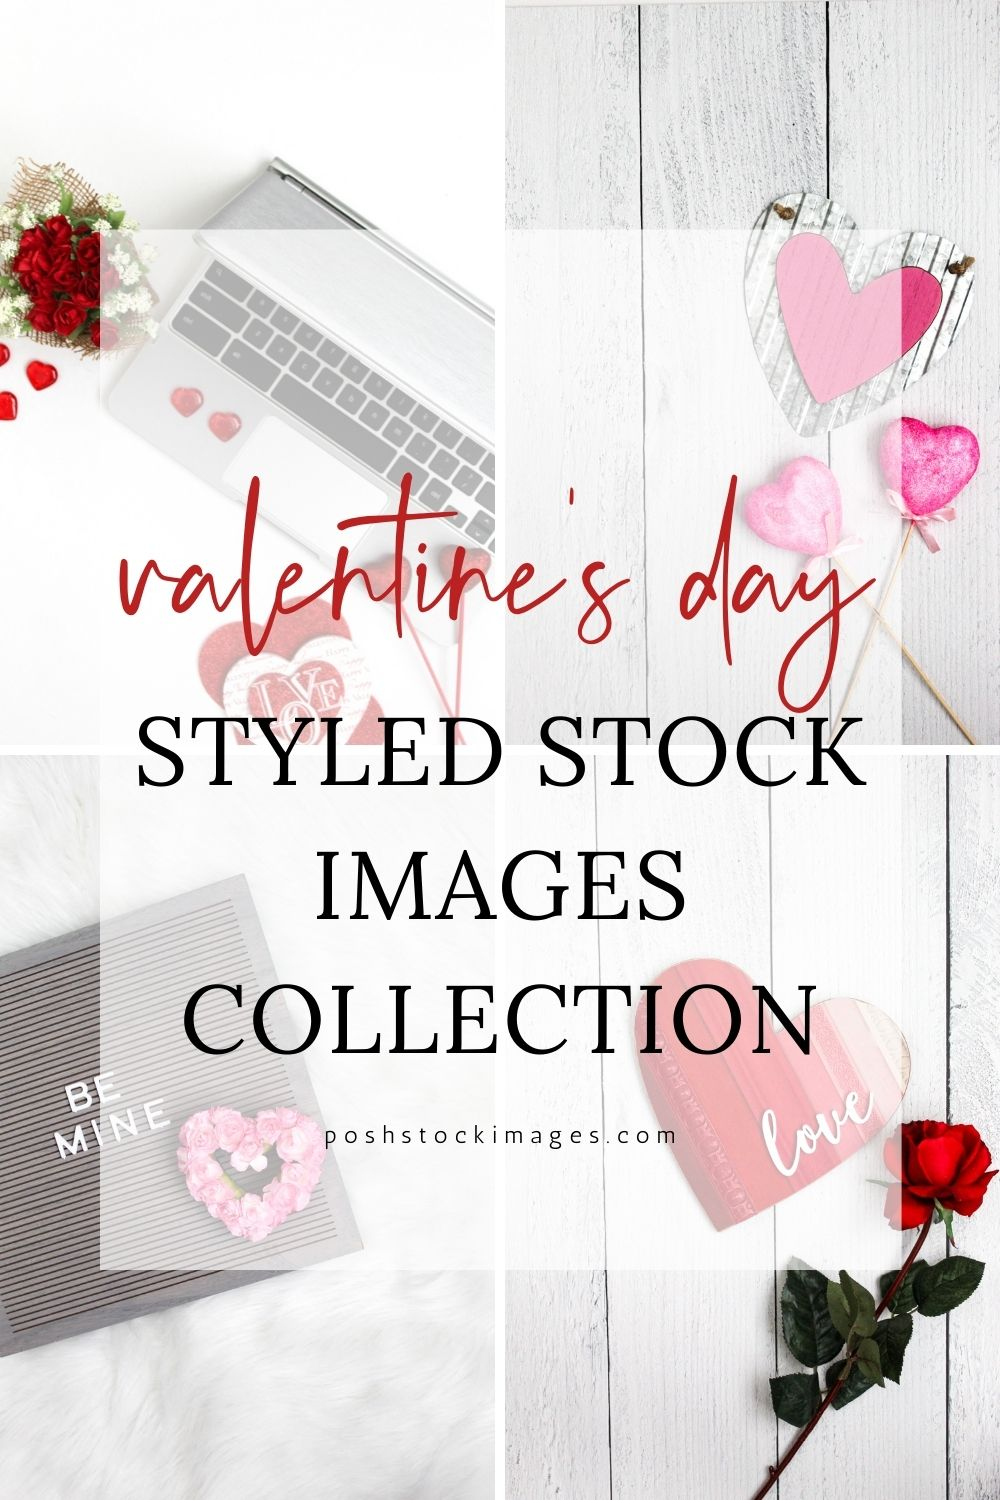 Introducing Our Valentine's Day Styled Stock Images #valentinesday #styledstockimages #stockimages #stockphotos